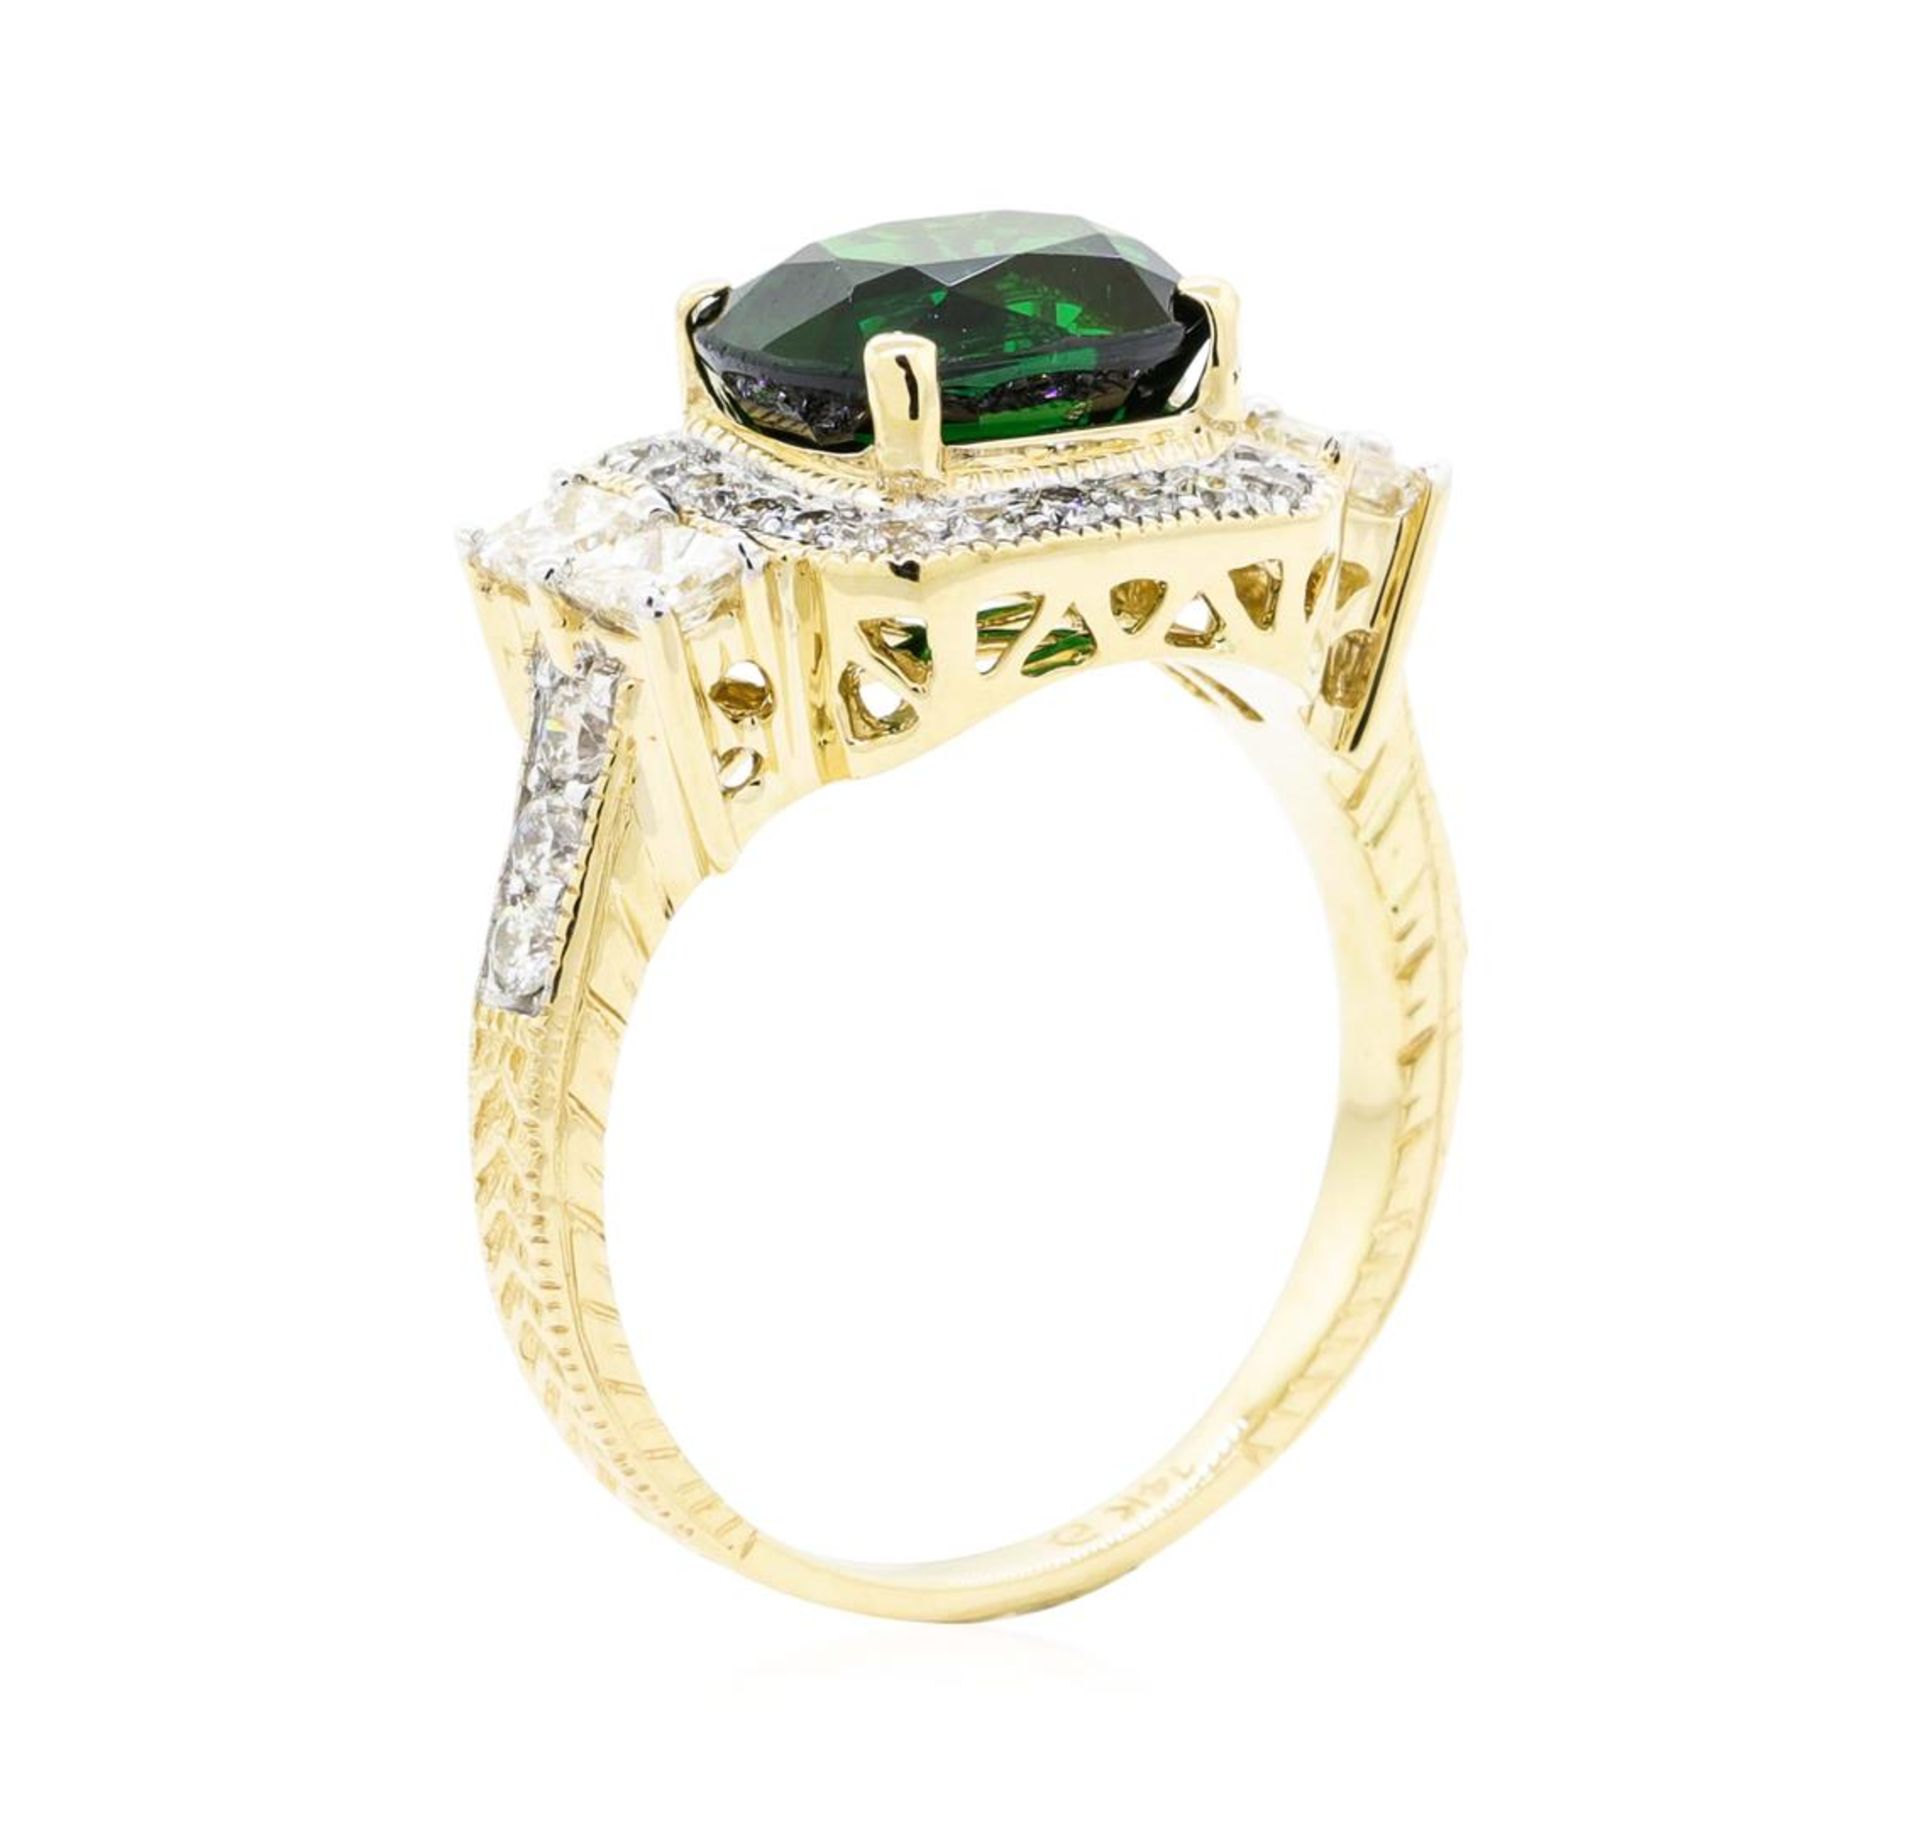 4.44 ctw Rectangular Cushion Mixed Tsavorite Garnet And Princess Cut Diamond Rin - Image 4 of 5